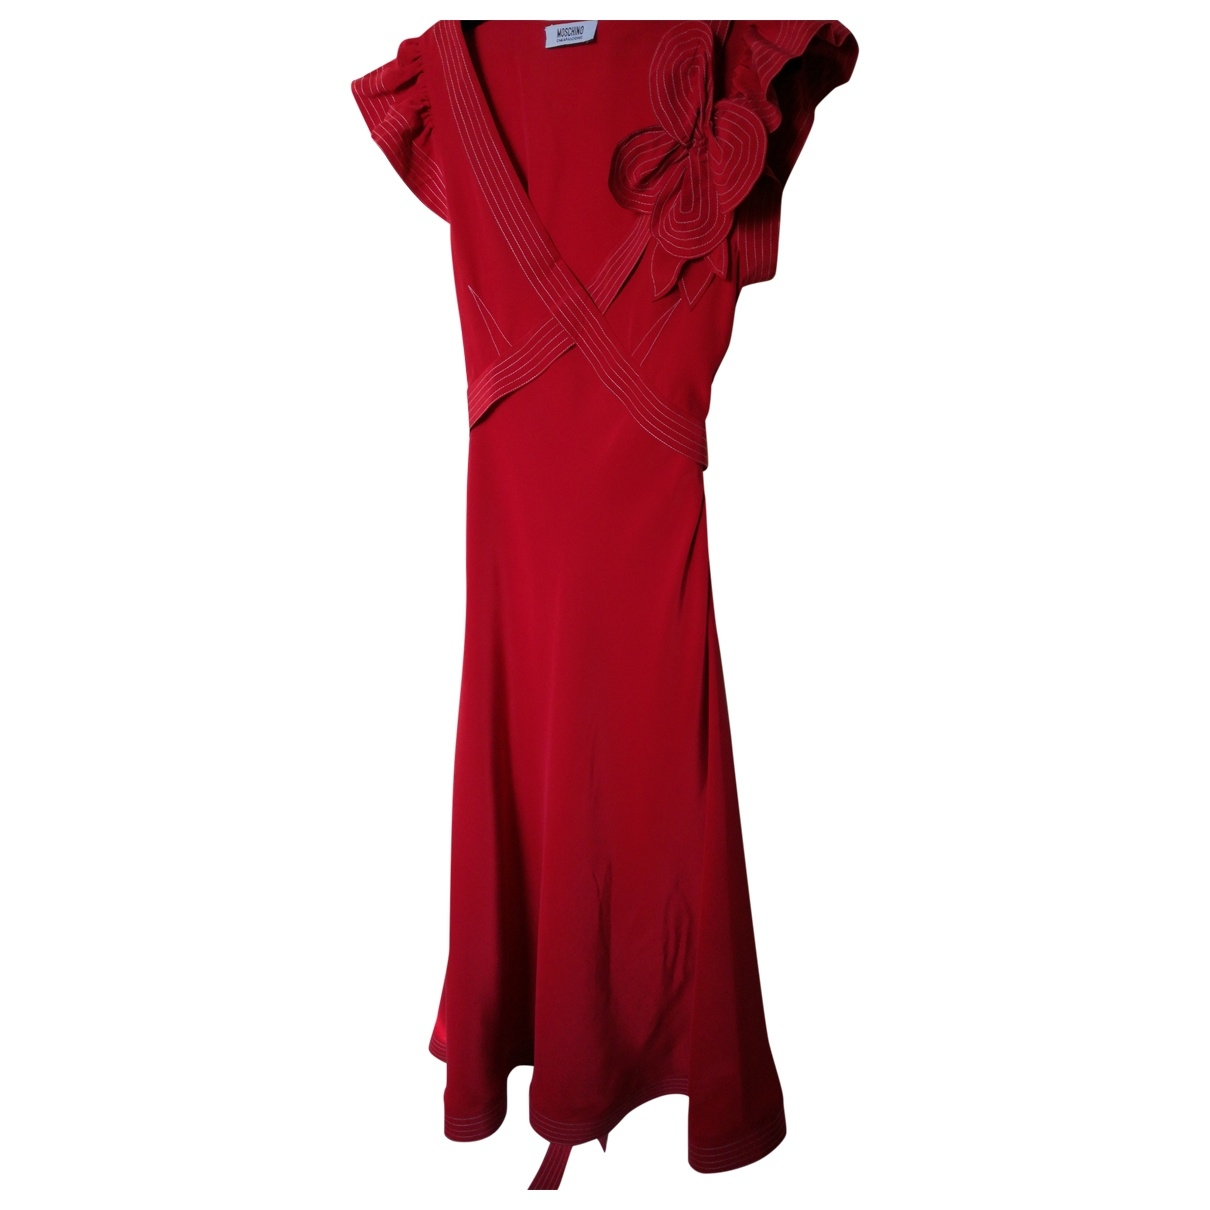 Moschino Cheap And Chic \N Red Silk dress for Women 38 IT